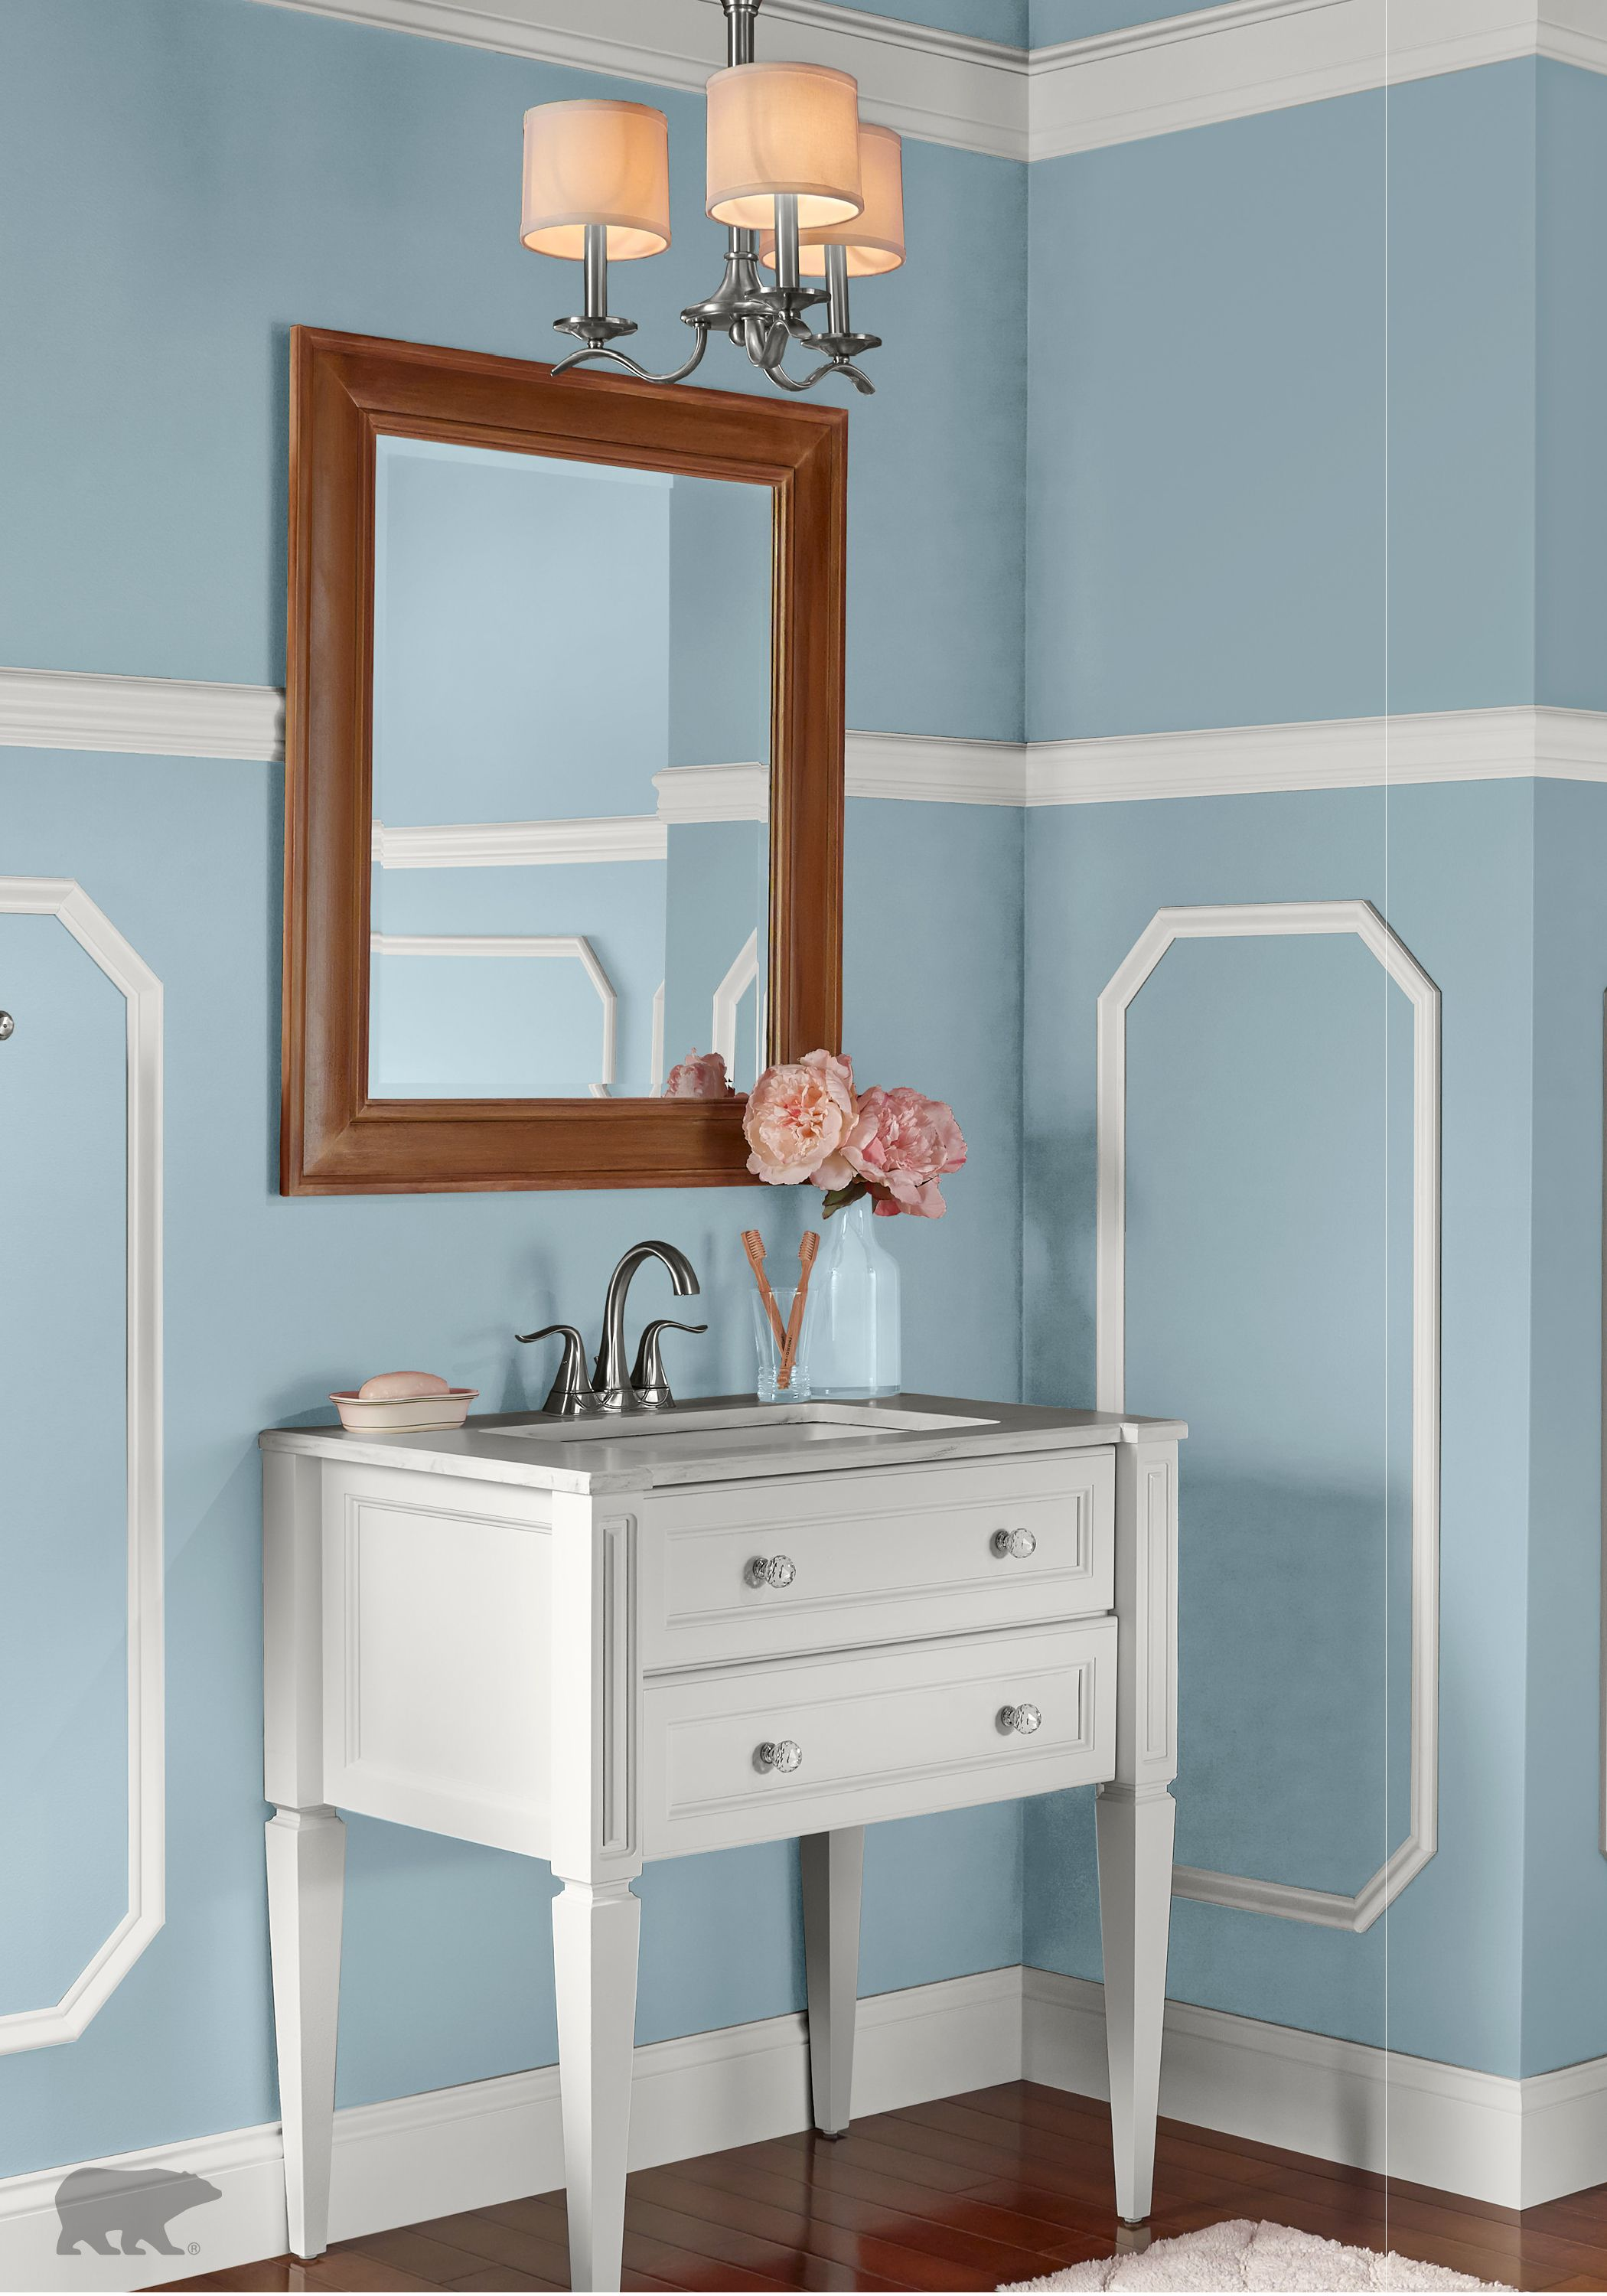 Update your Victorian-style bathroom with BEHR paint in Snowmelt ...